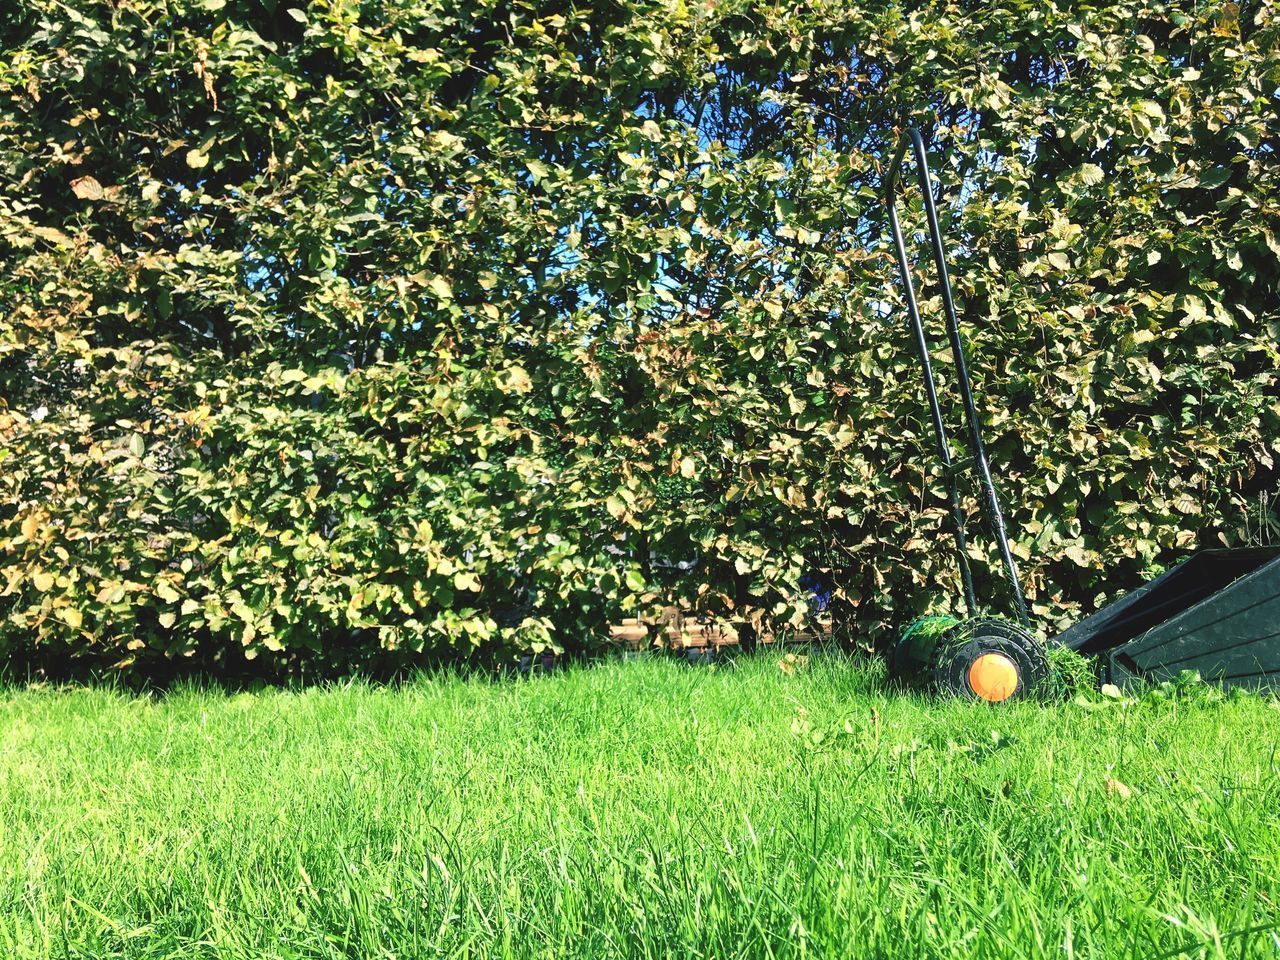 plant, green color, grass, growth, ball, nature, field, day, land, tree, no people, sport, outdoors, golf ball, beauty in nature, sunlight, sphere, golf, freshness, branch